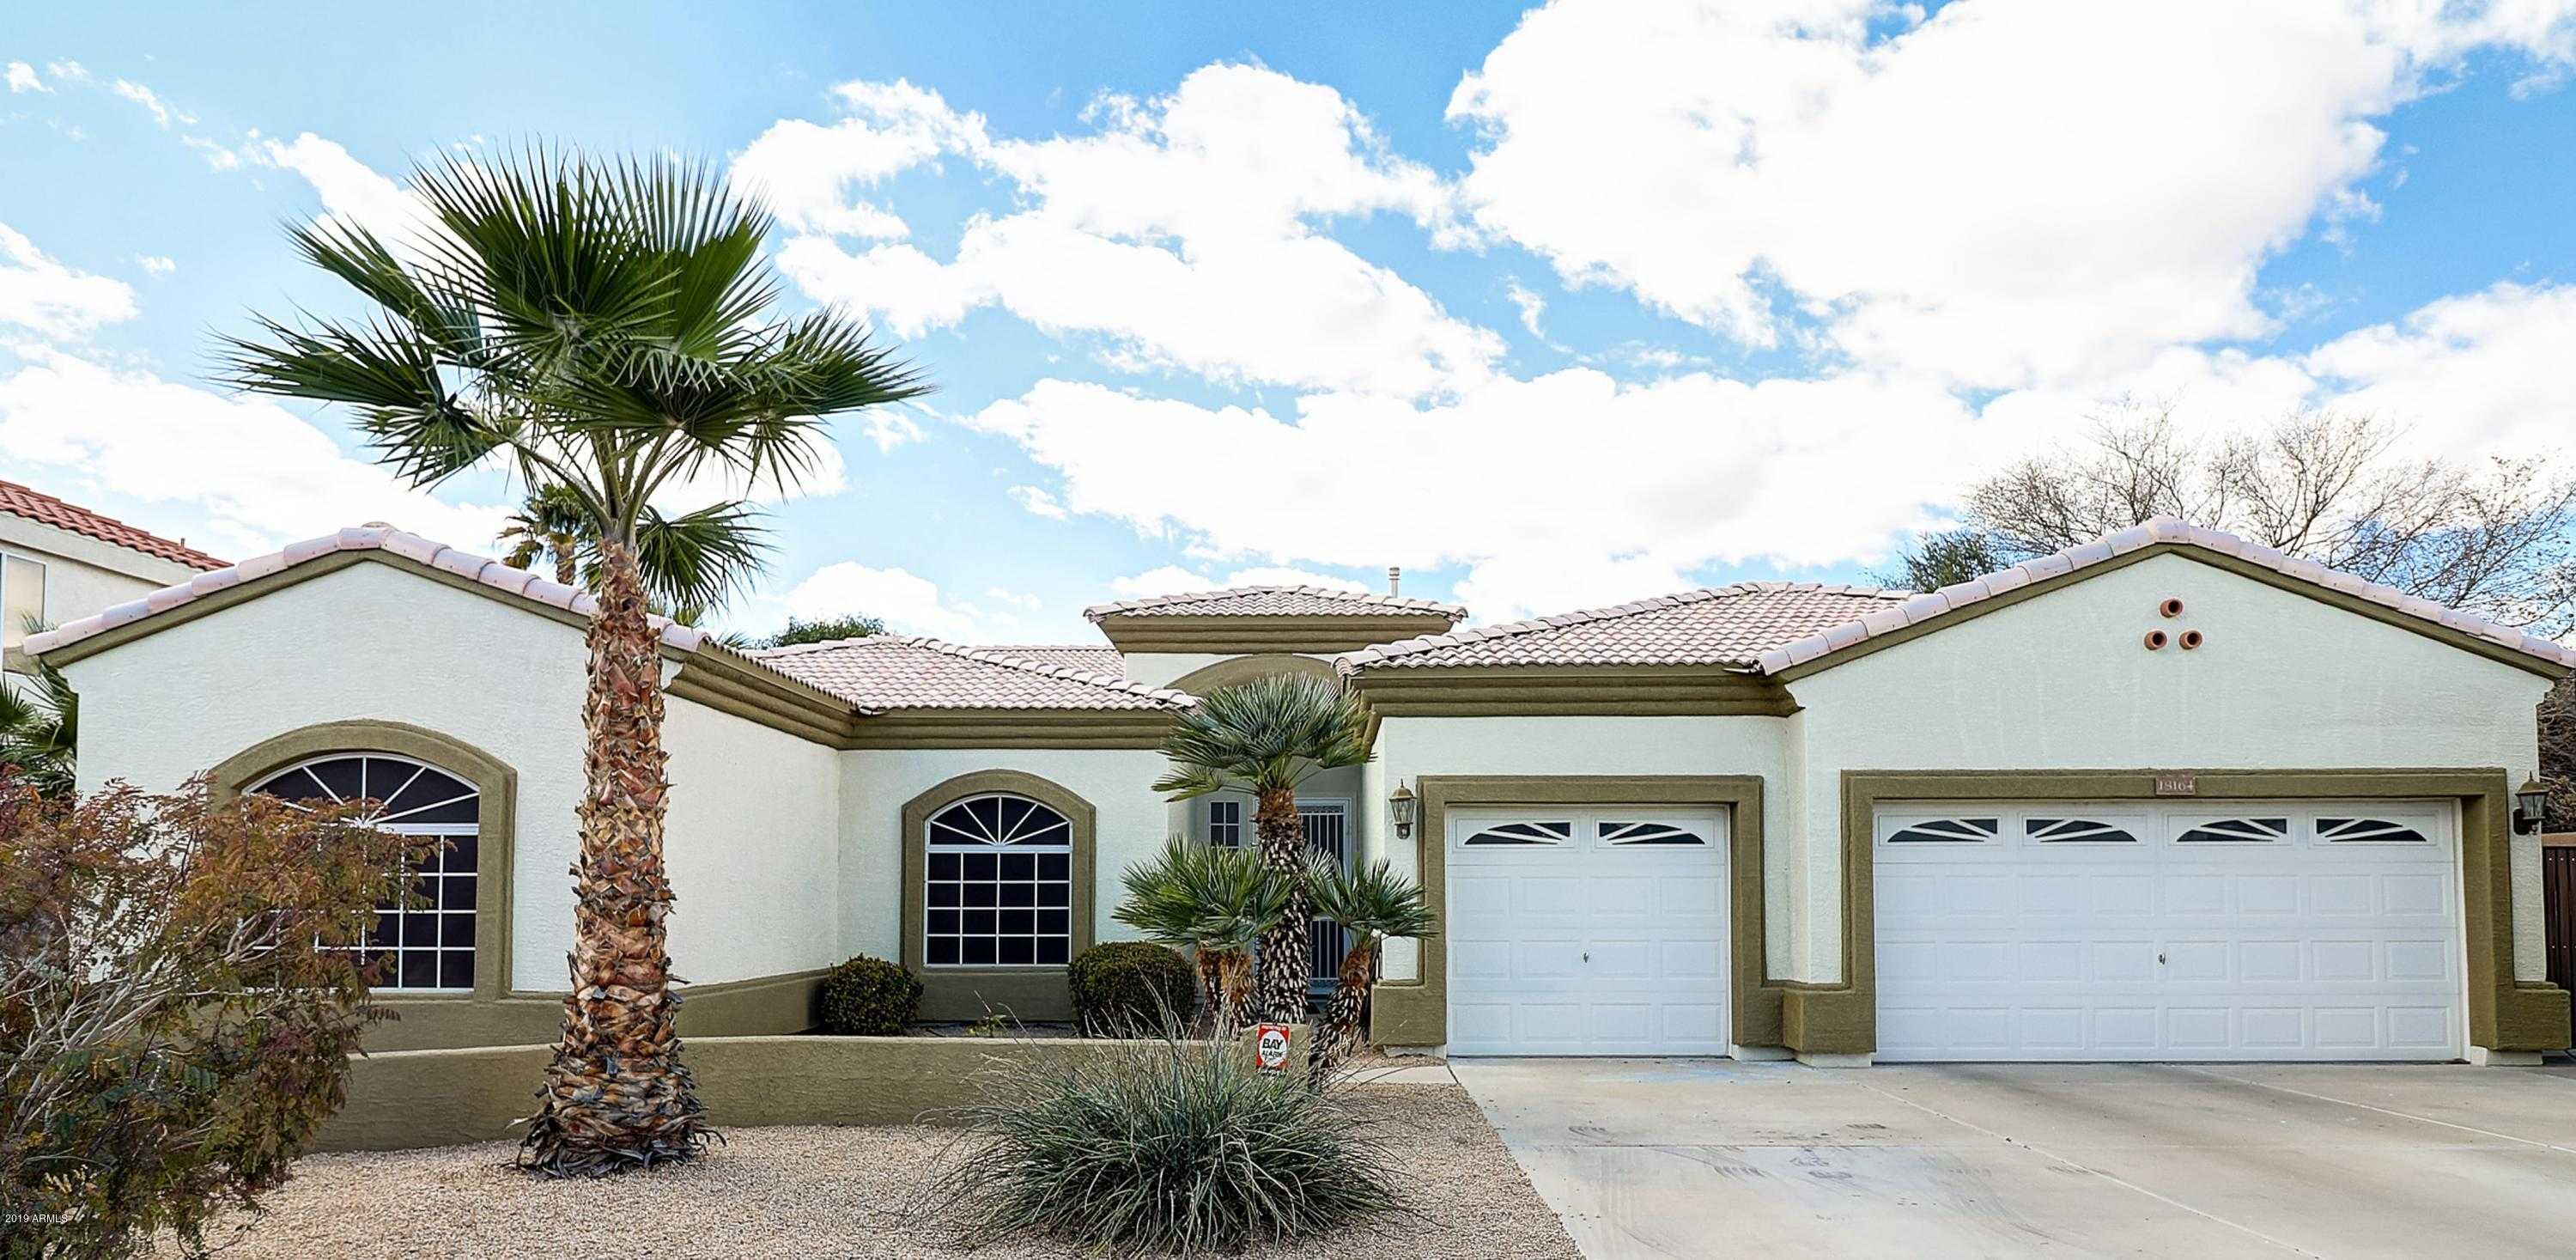 $495,000 - 4Br/2Ba - Home for Sale in Arrowhead Valley Unit Three, Glendale